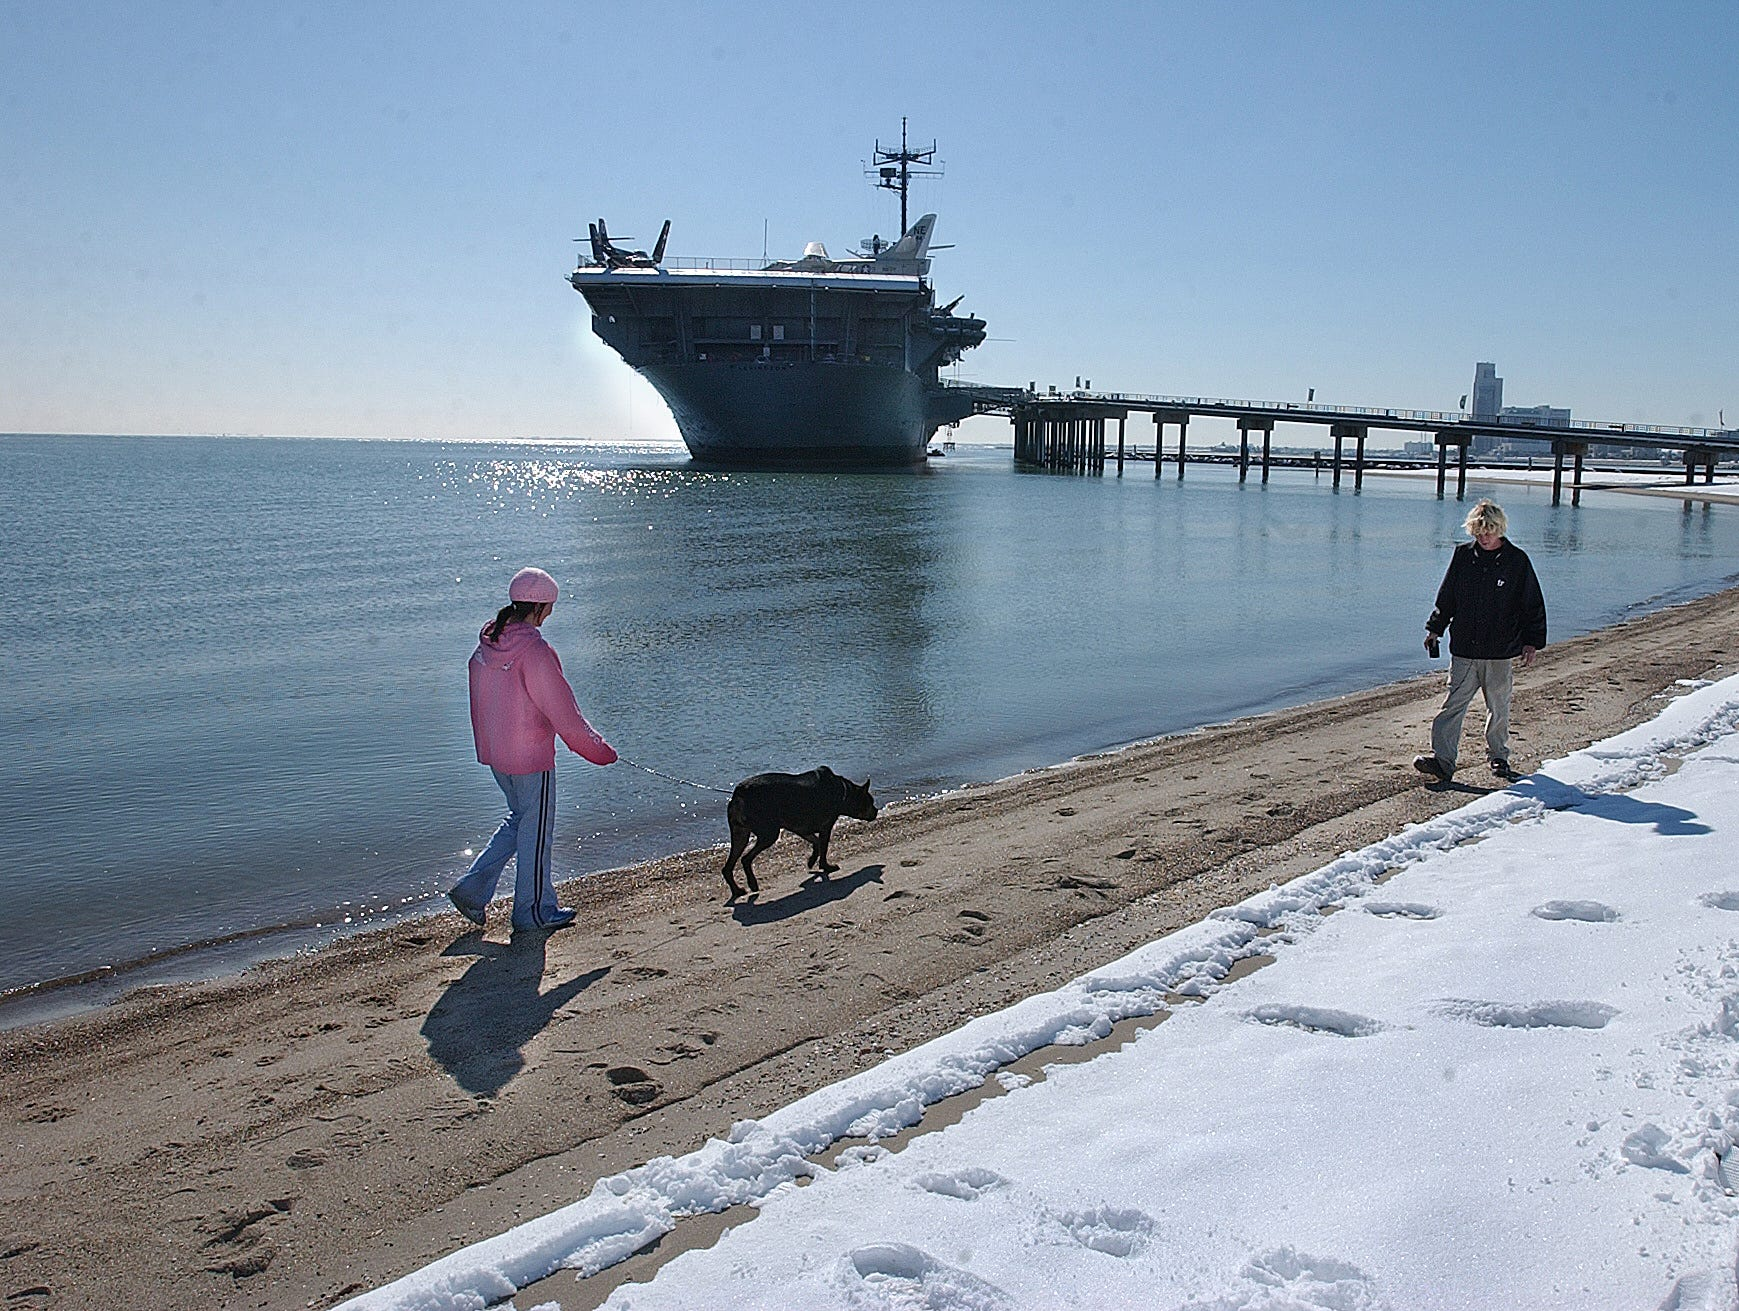 April Burges (left) and Tommy Lonnon walk their mixed pit bull, Hooch, along Corpus Christi Beach early Saturday morning, Dec. 25, 2004. The couple said it was the first time Hooch had experienced snow.